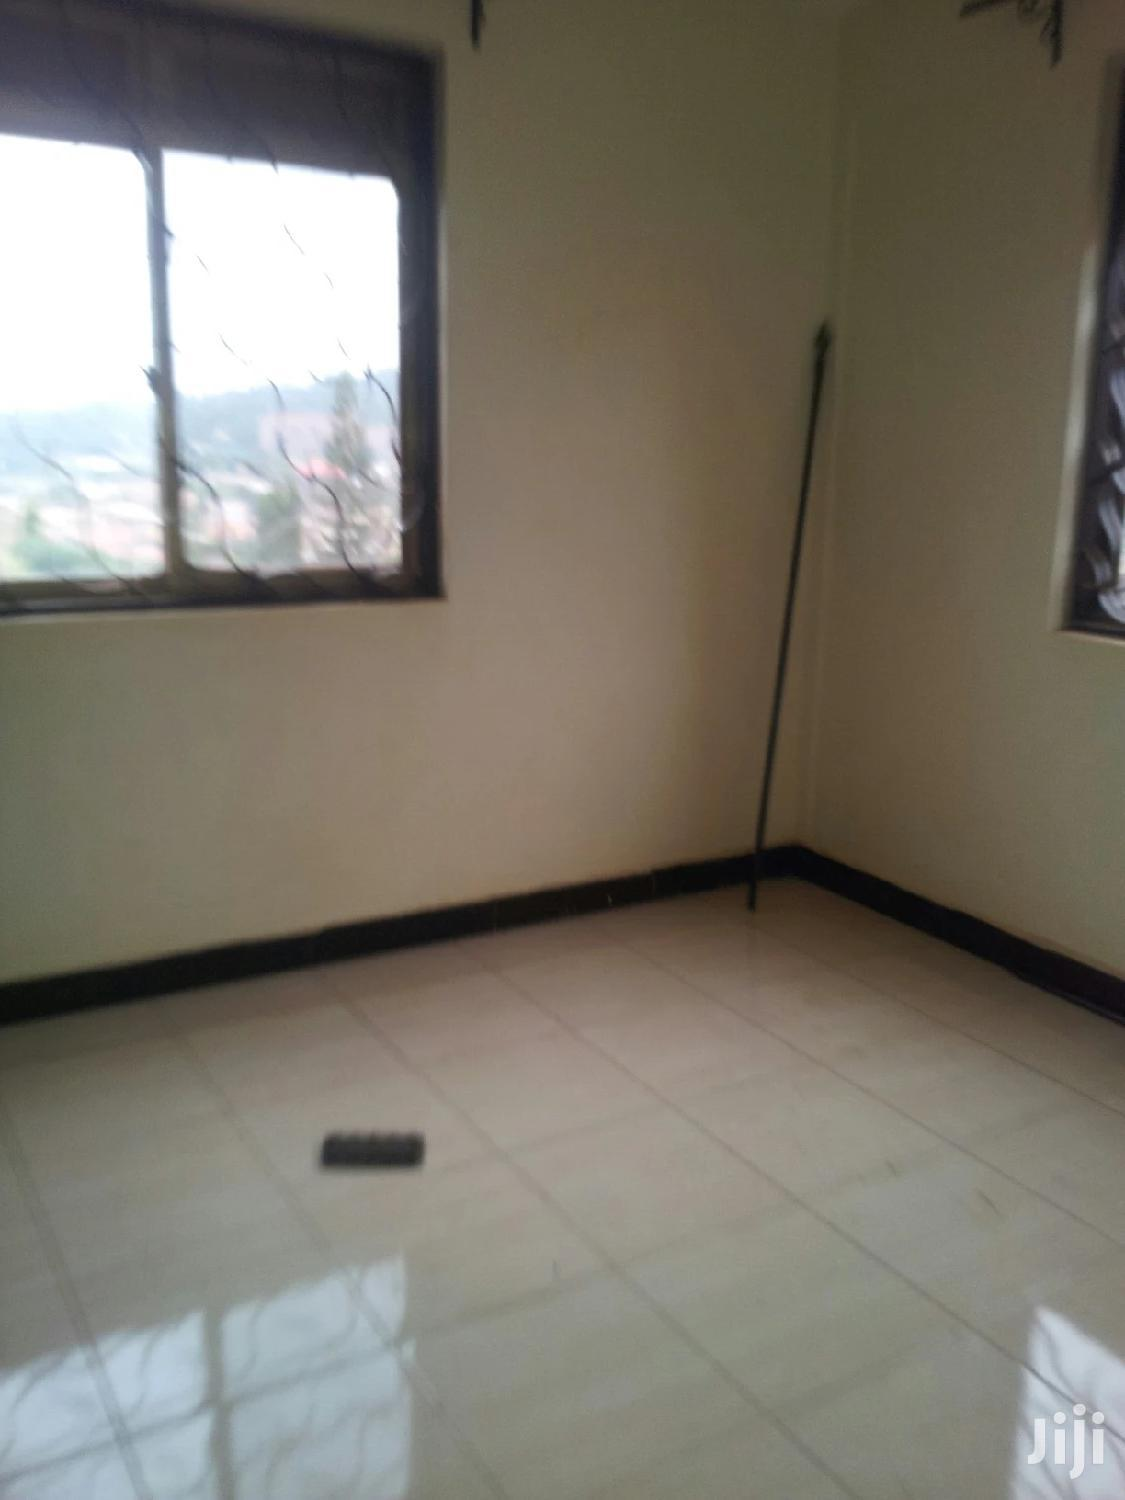 Apartment For Rent At Kitintale Luzira | Houses & Apartments For Rent for sale in Kampala, Central Region, Uganda